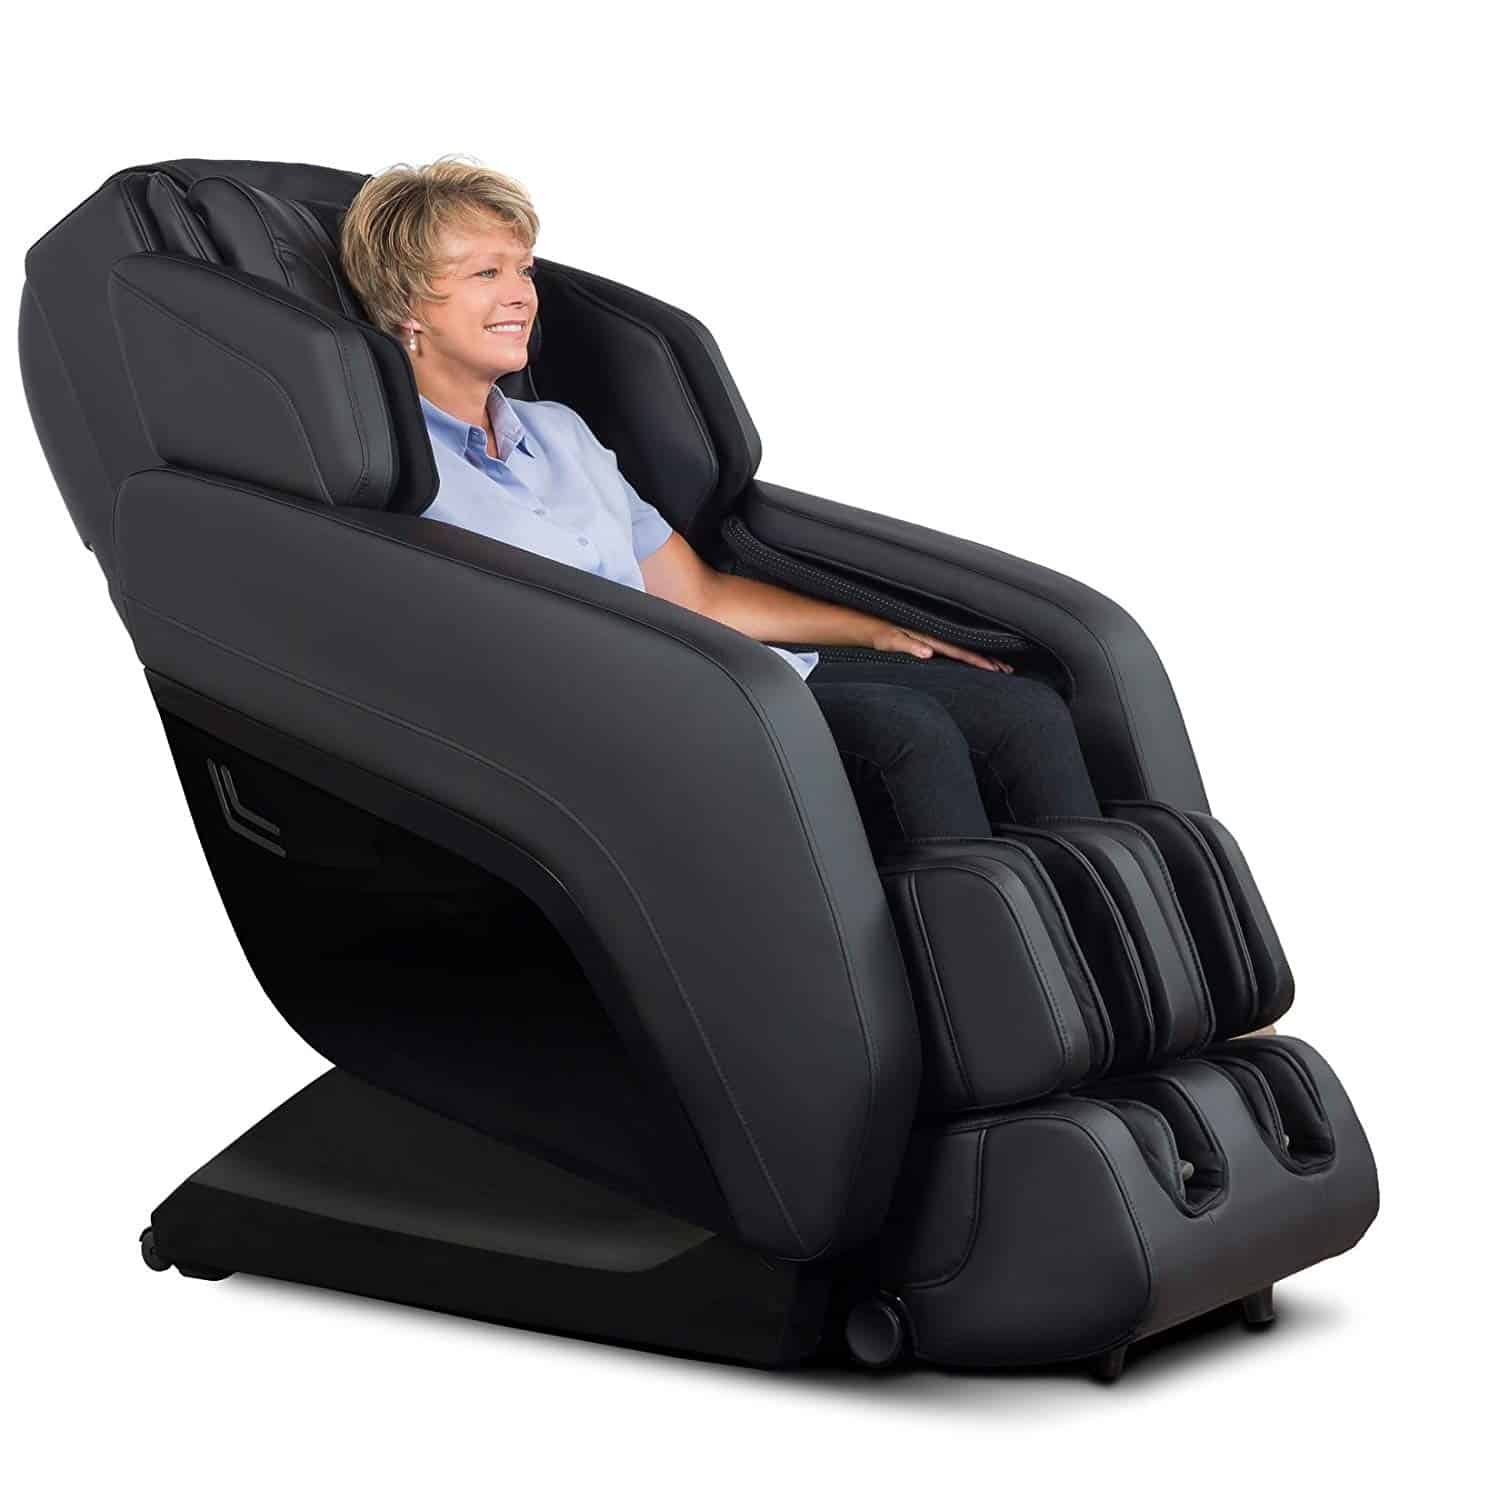 Relaxonchair MK V Massage Chair